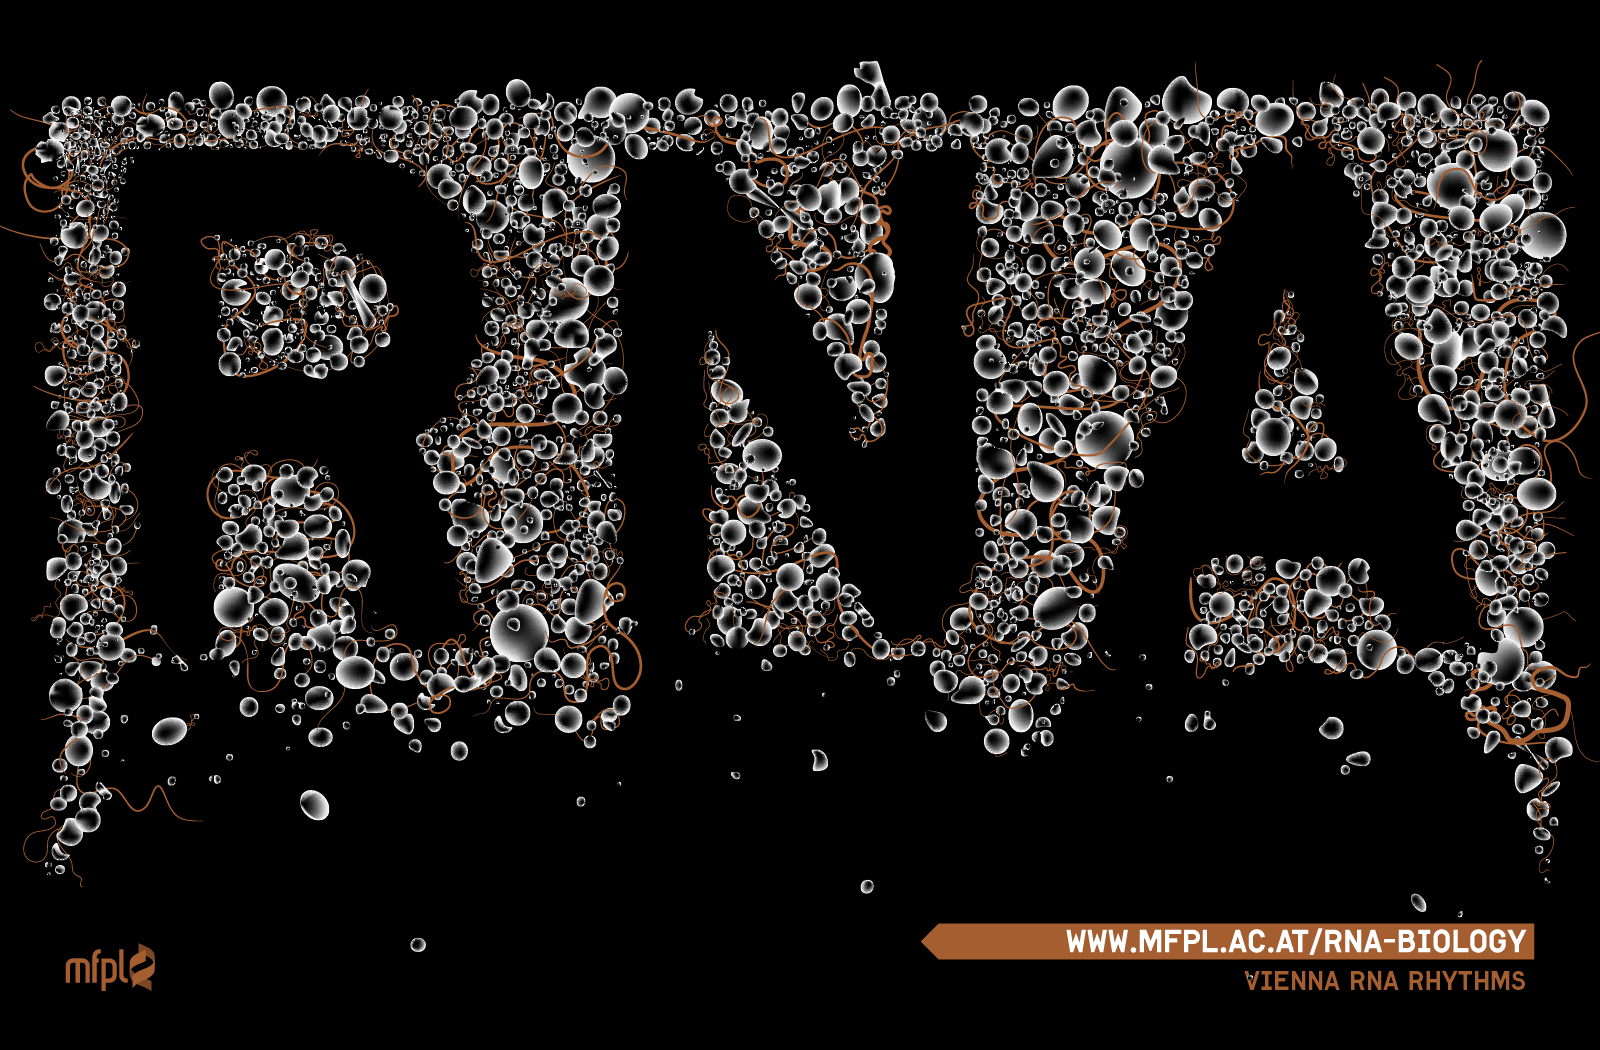 RNA BIOLOGY WALLPAPER 1600x1050